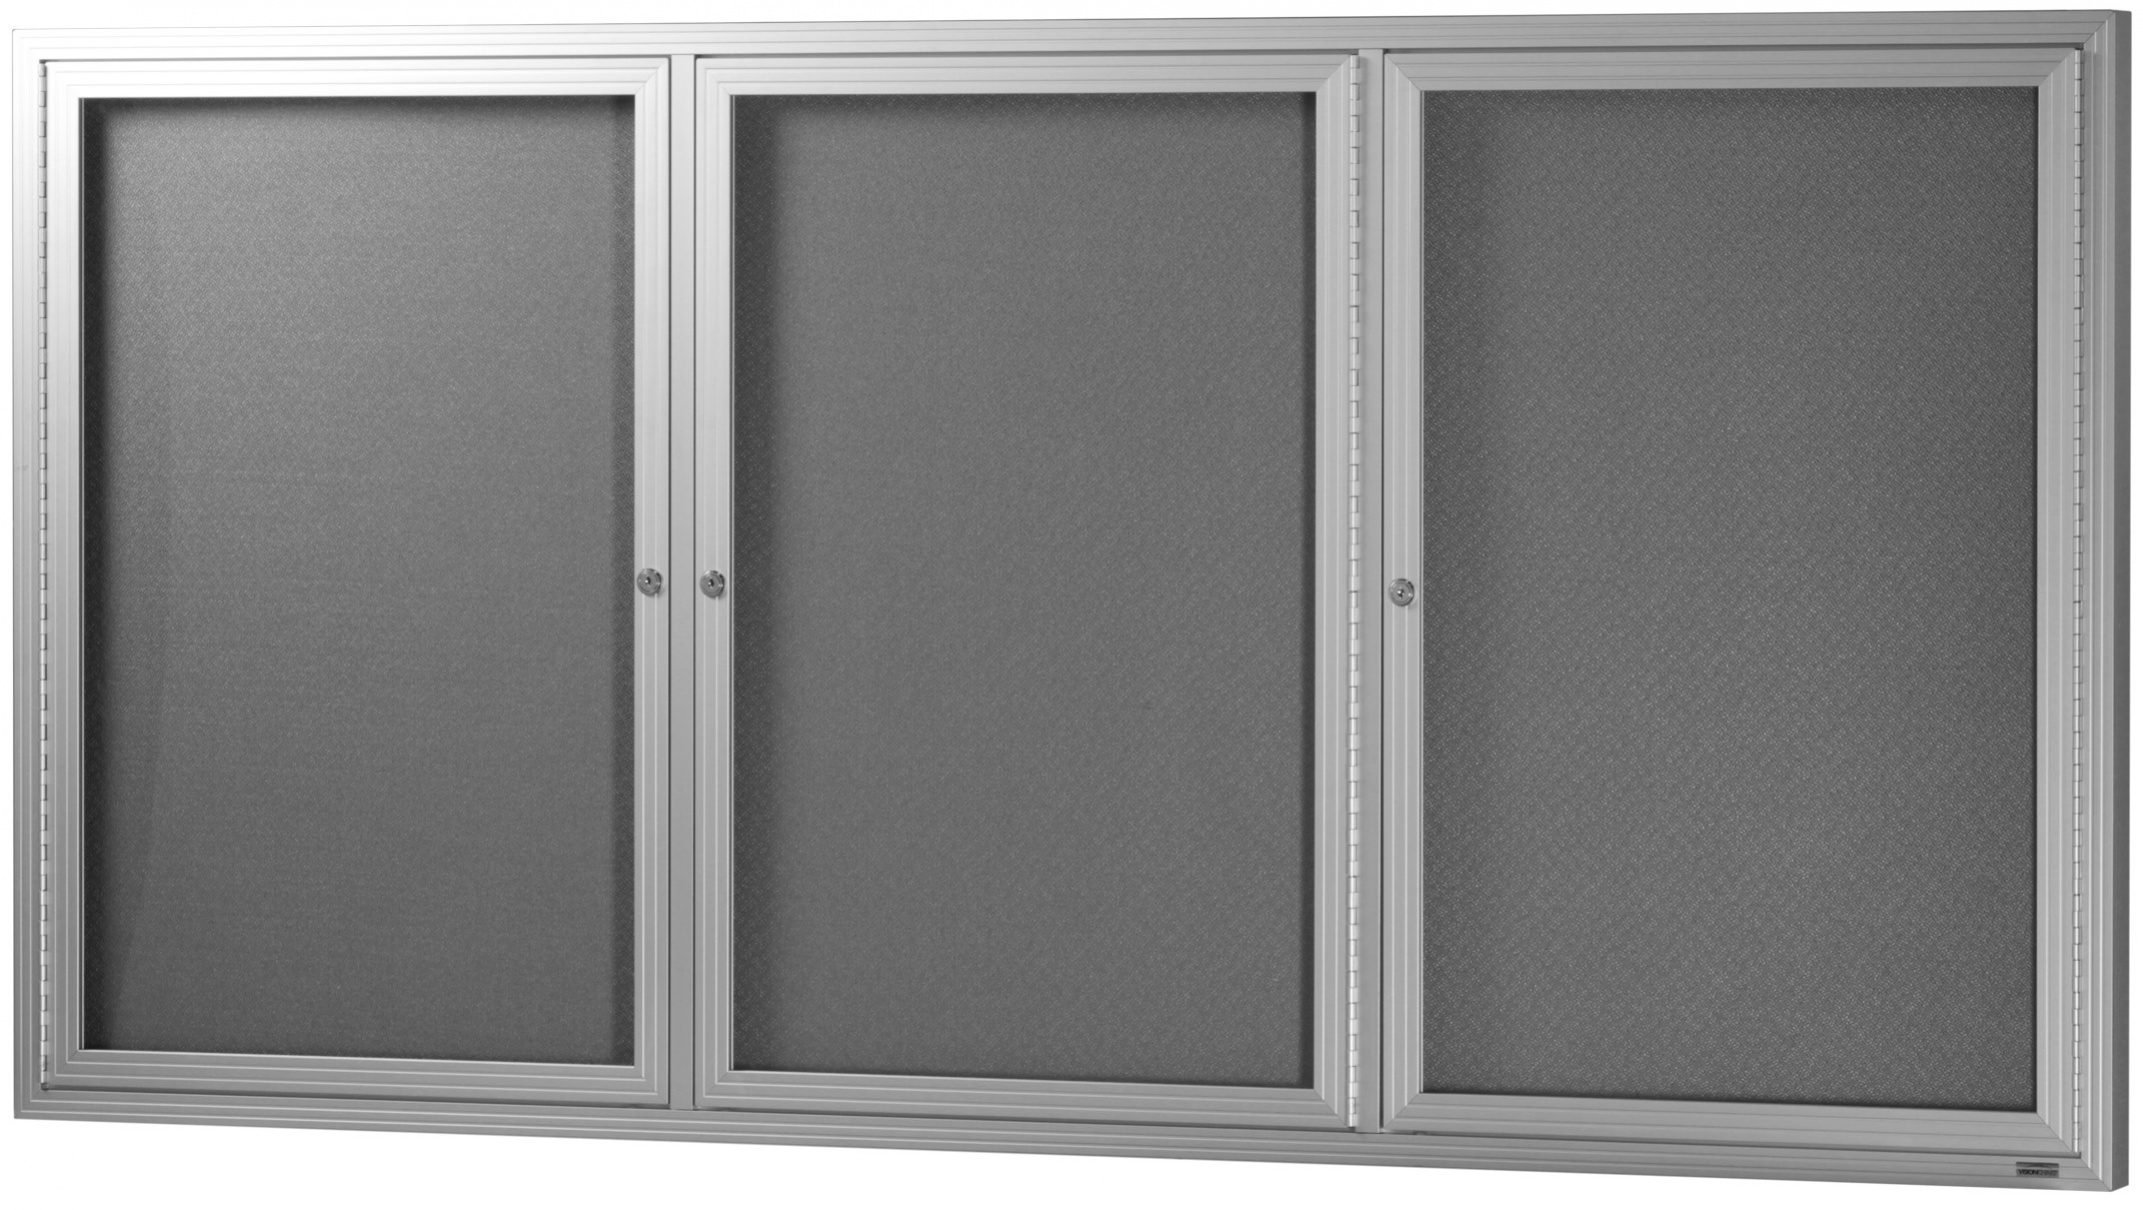 Hinged Three Door Glass Case *Grey Felt/ Silver Frame*